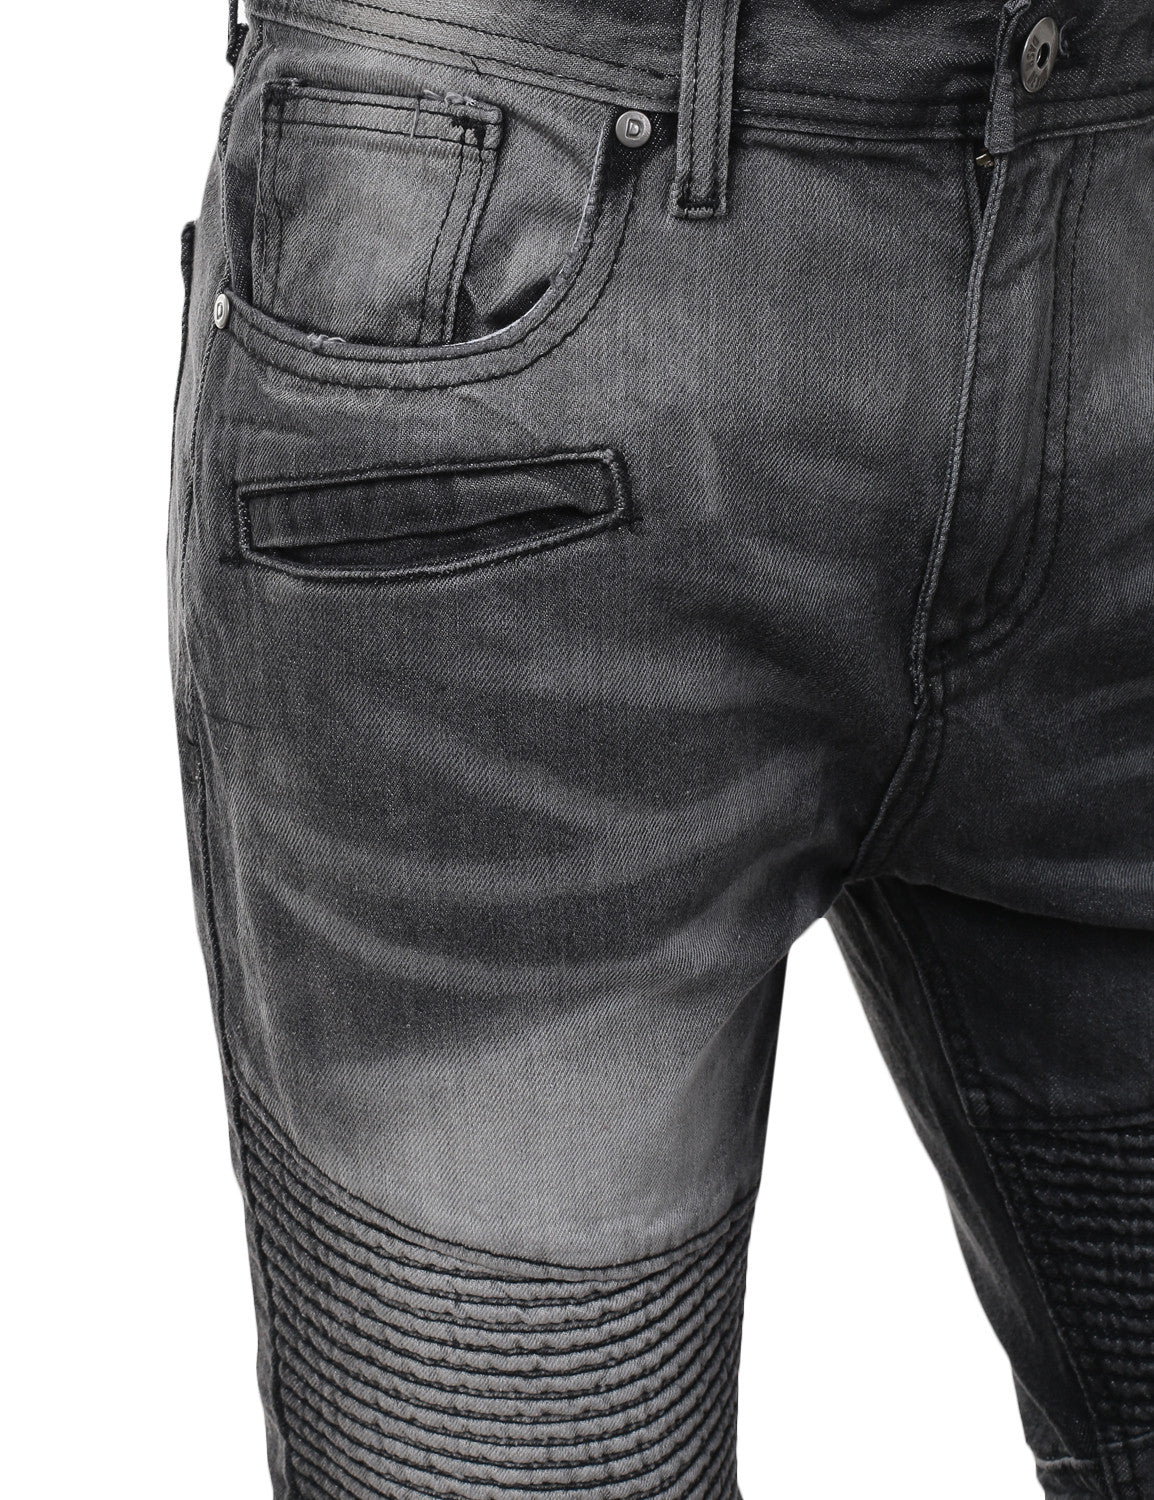 Washed Slim Fit Denim Biker Ribbed Jeans - URBANCREWS - 4